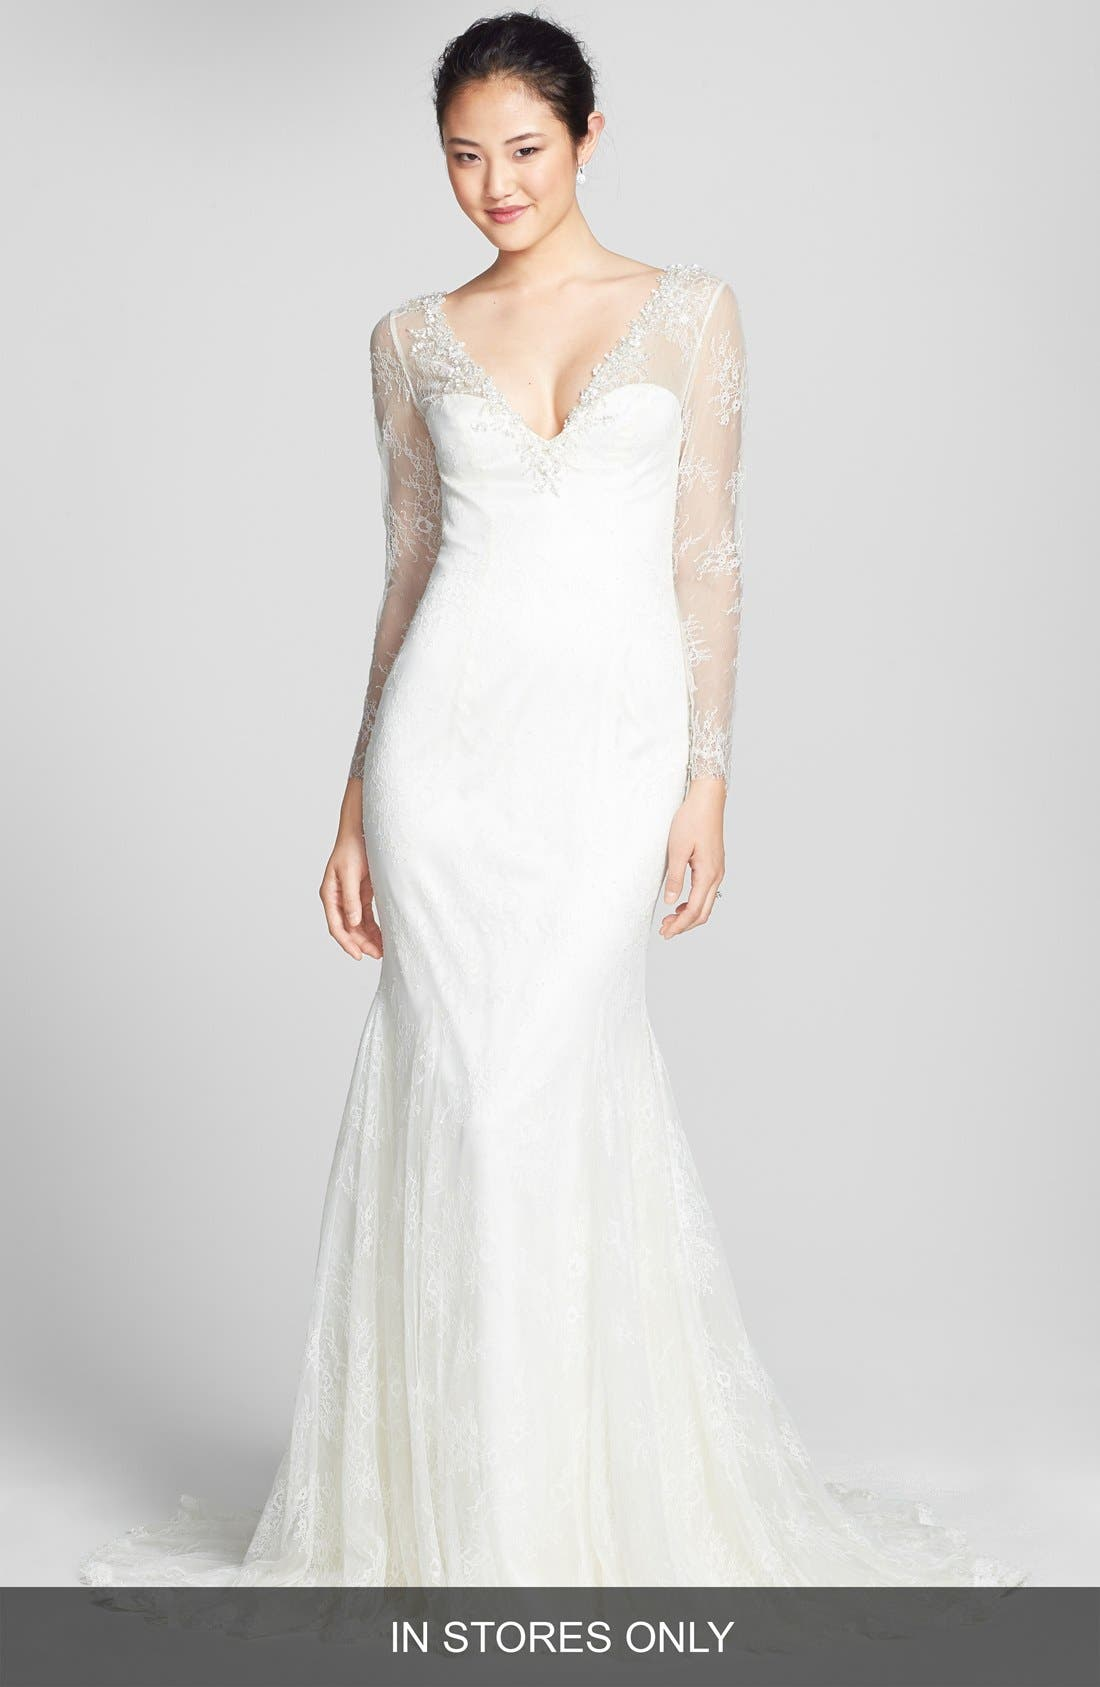 Main Image - Badgley Mischka Bridal 'Barbara' Embellished Lace Overlay Trumpet Dress (In Stores Only)